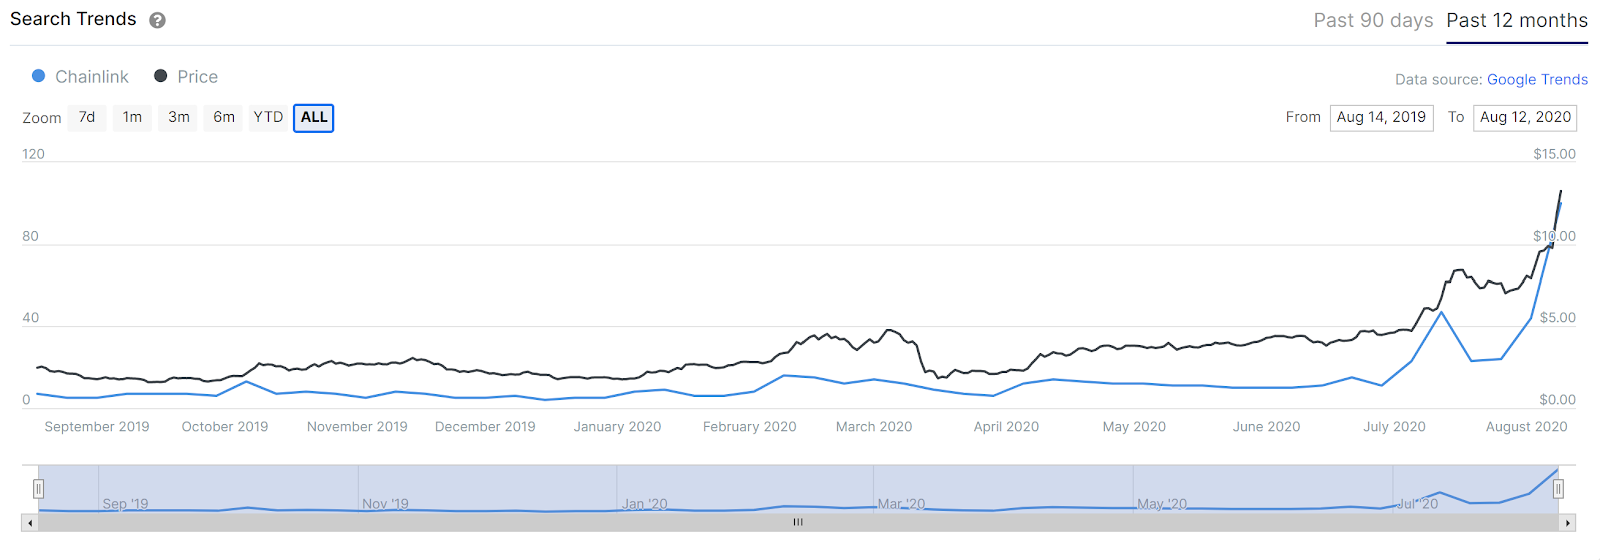 Google searches and LINK price